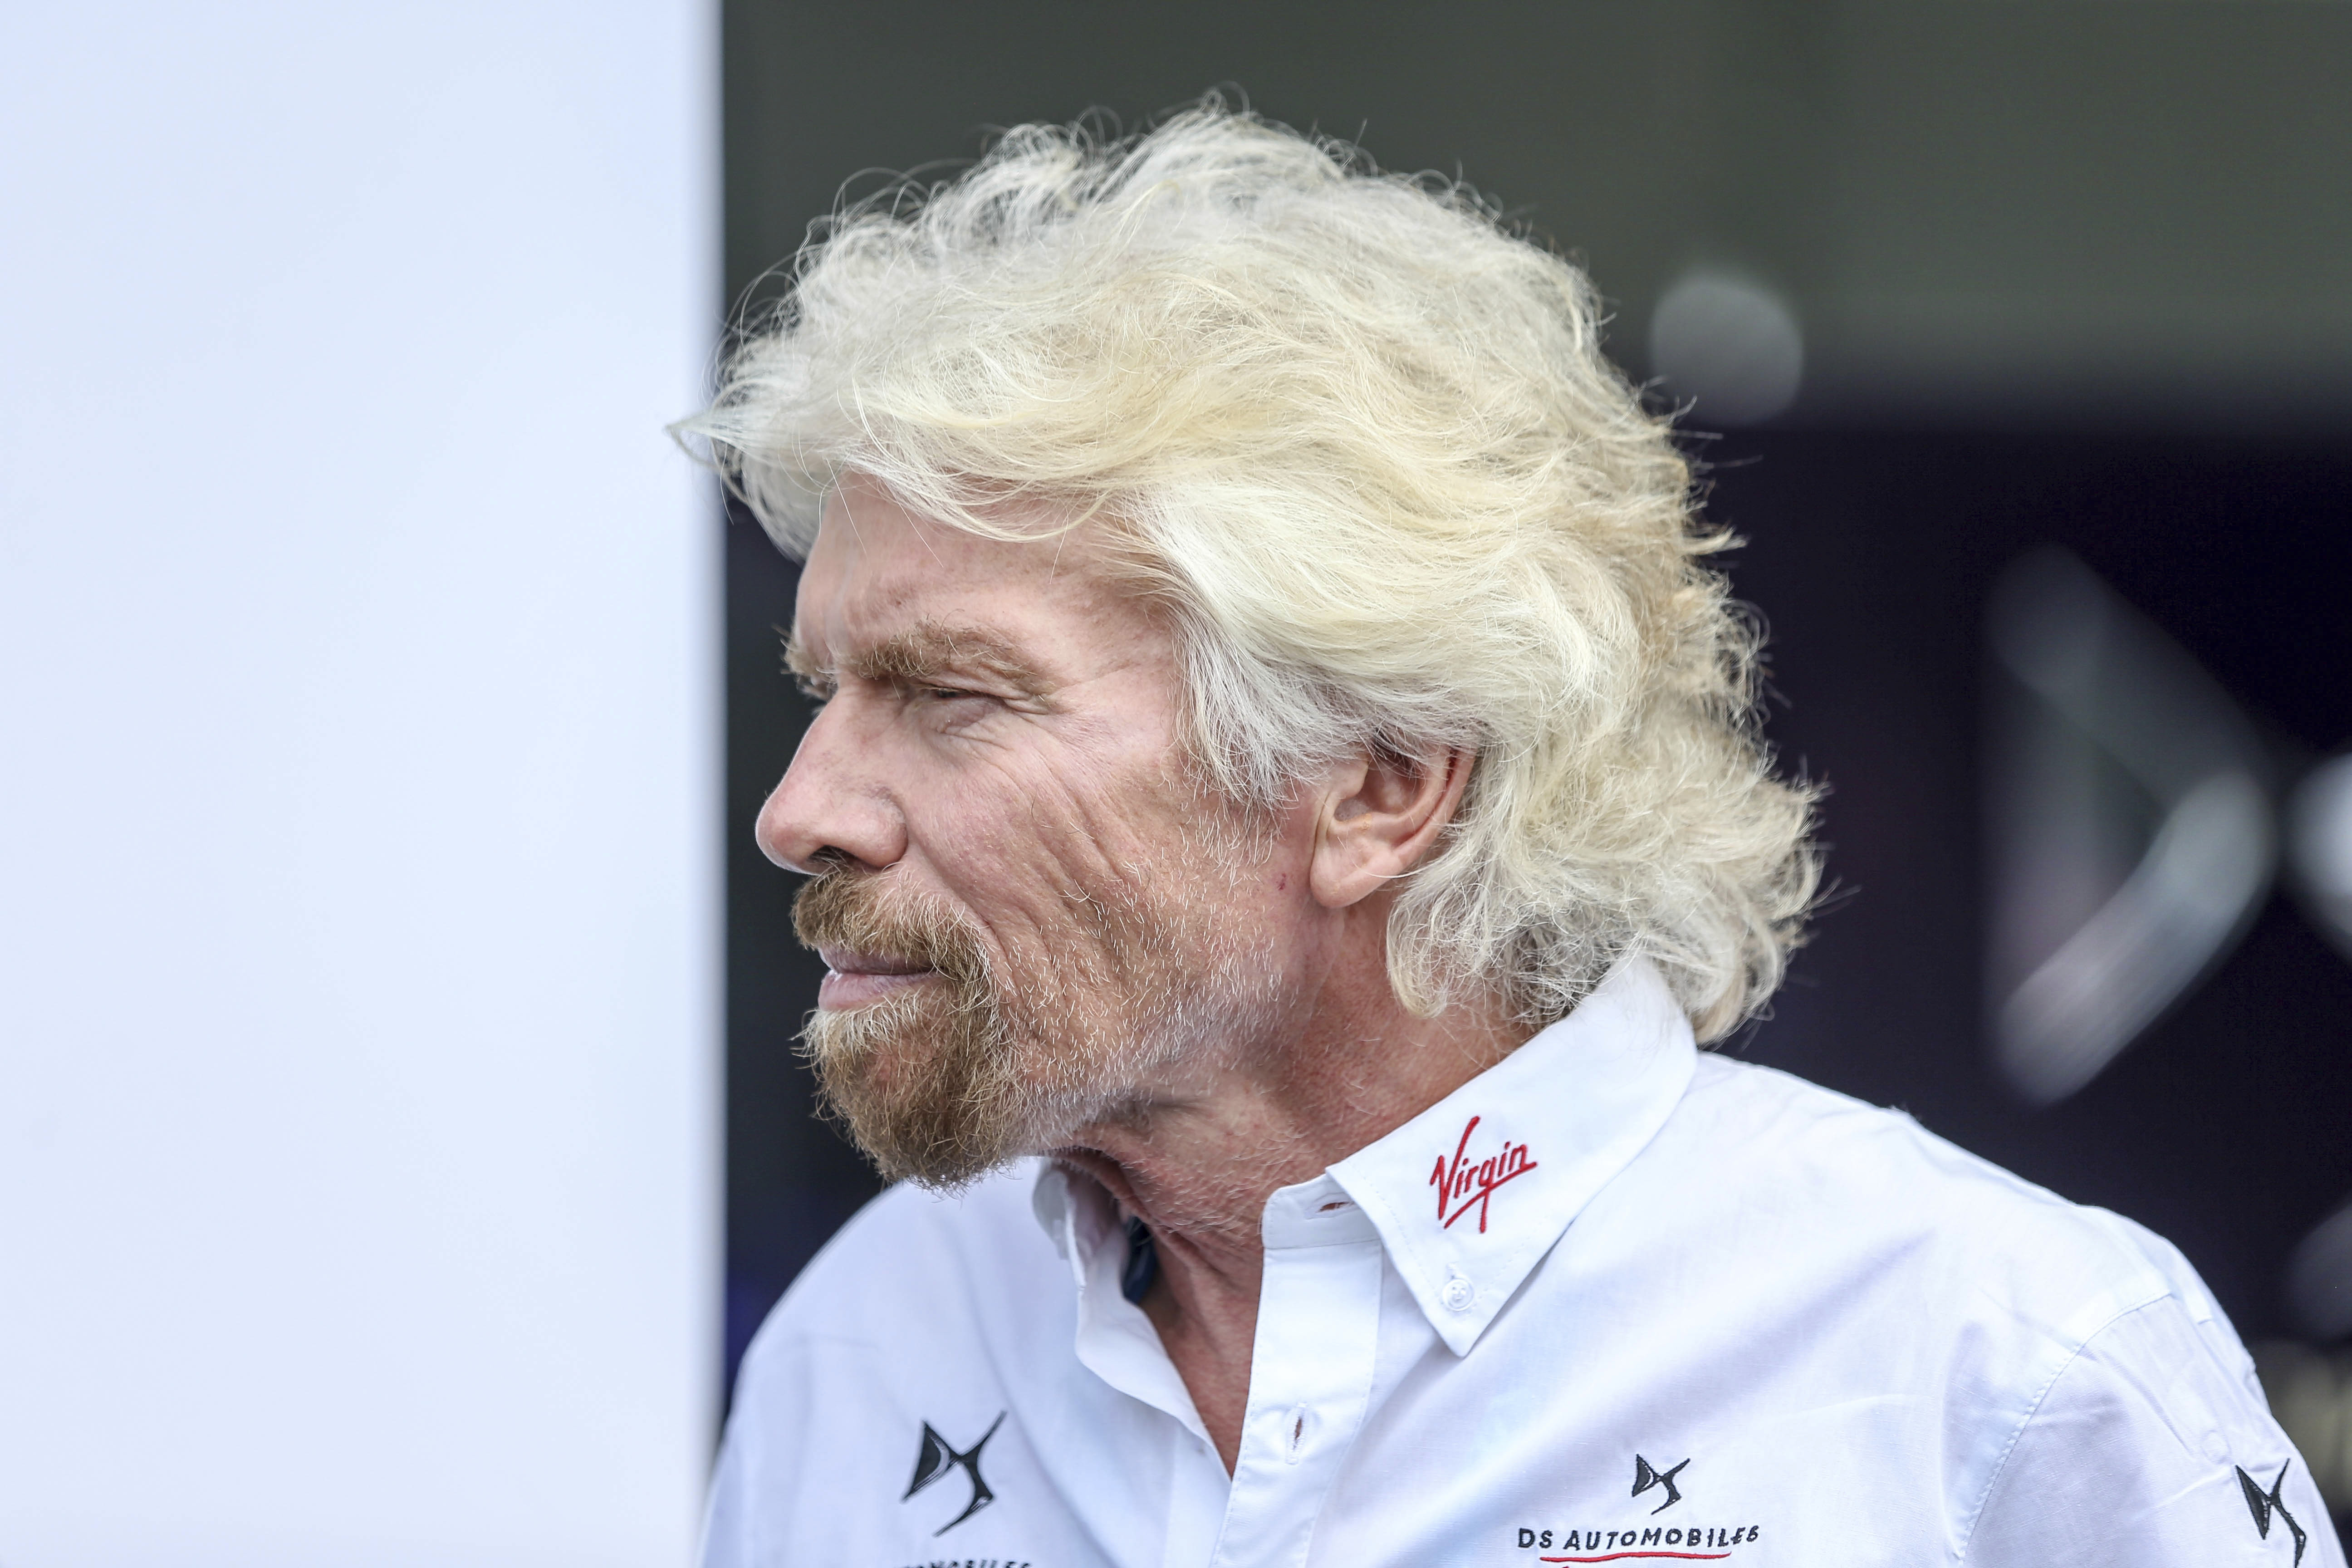 Sir Richard Branson is seen in New York City